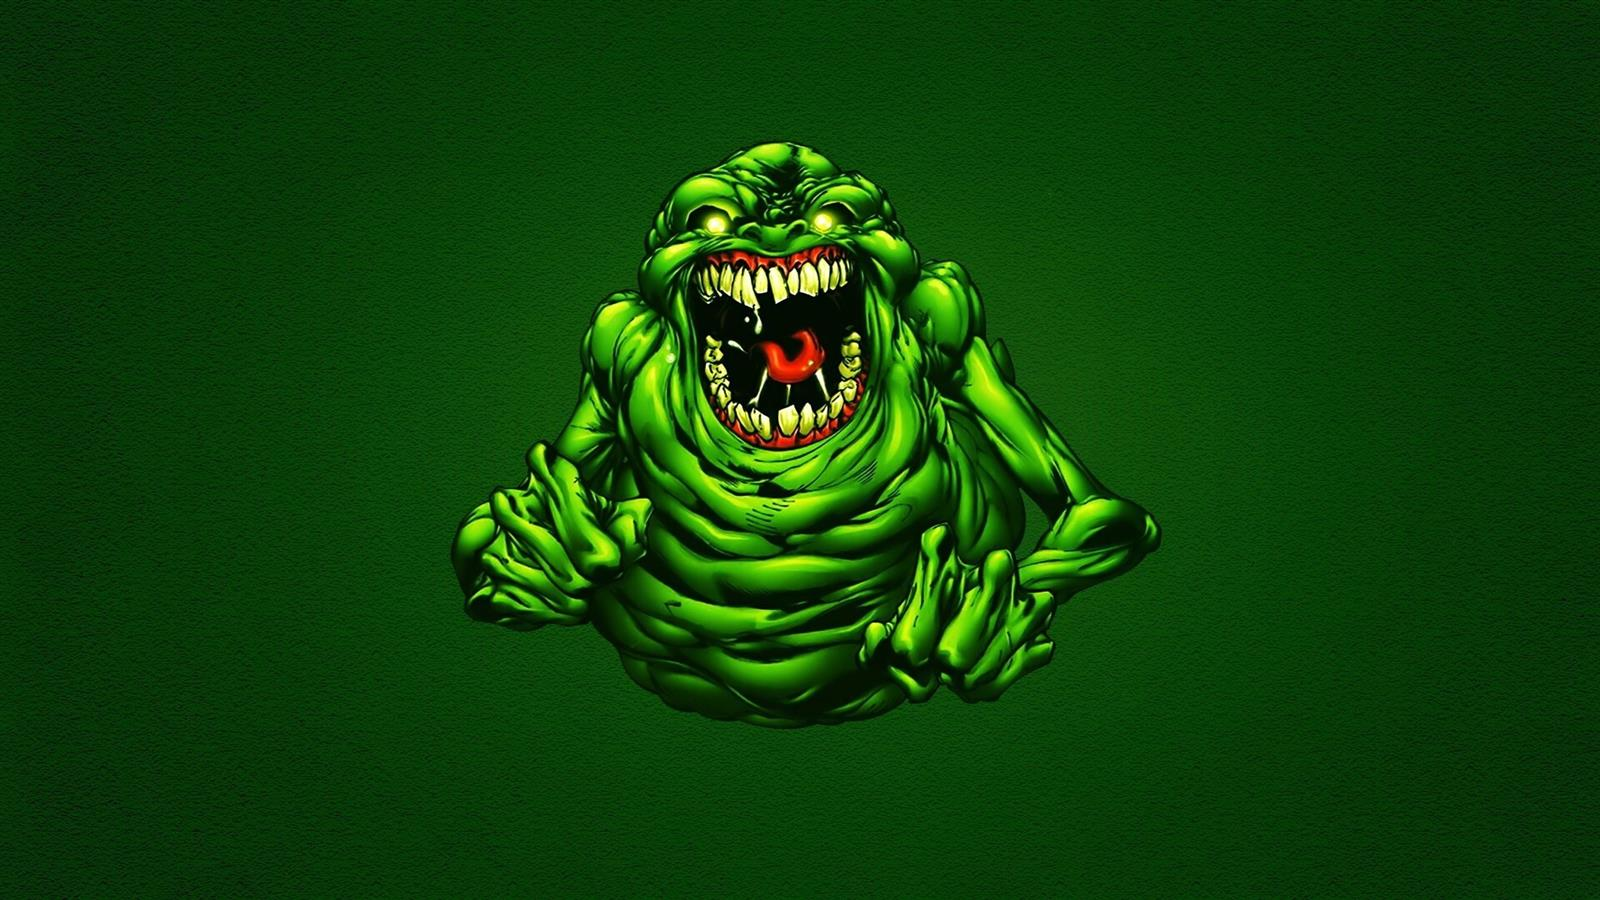 1600x900 Funny Green Ghostbusters Slimer Wallpapers